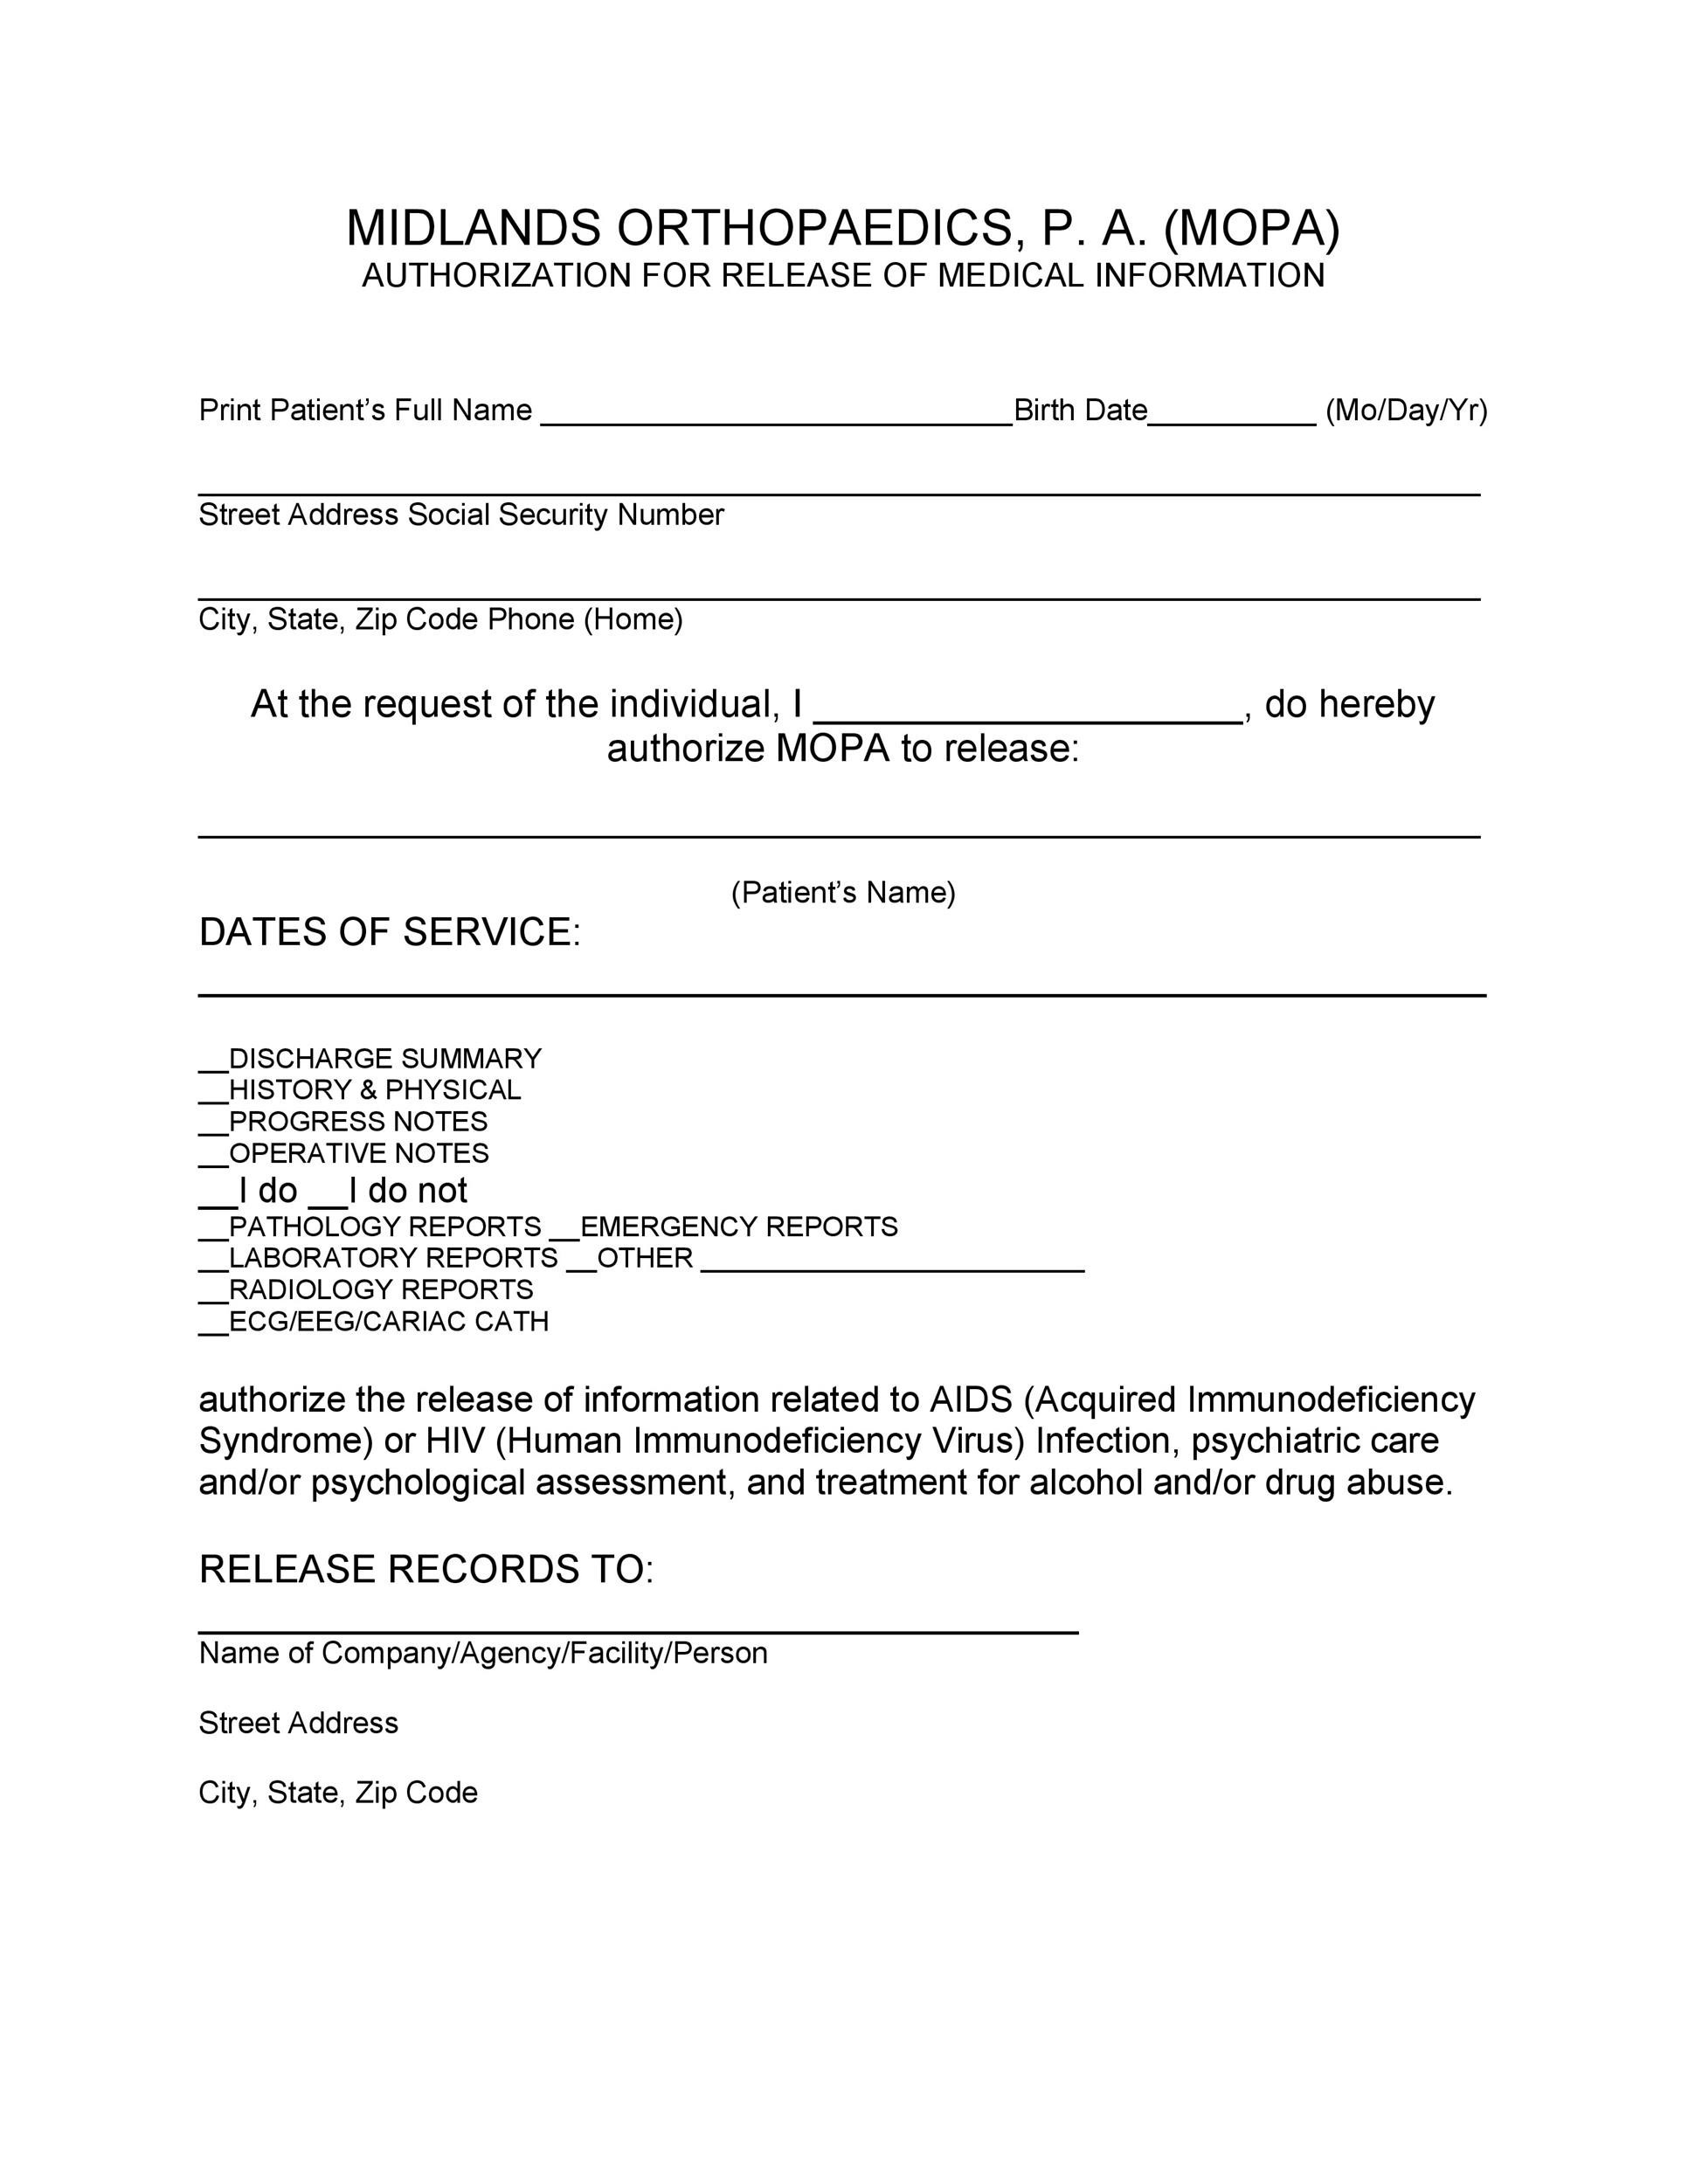 Lien Letter Template California Vehicle Storage Agreement